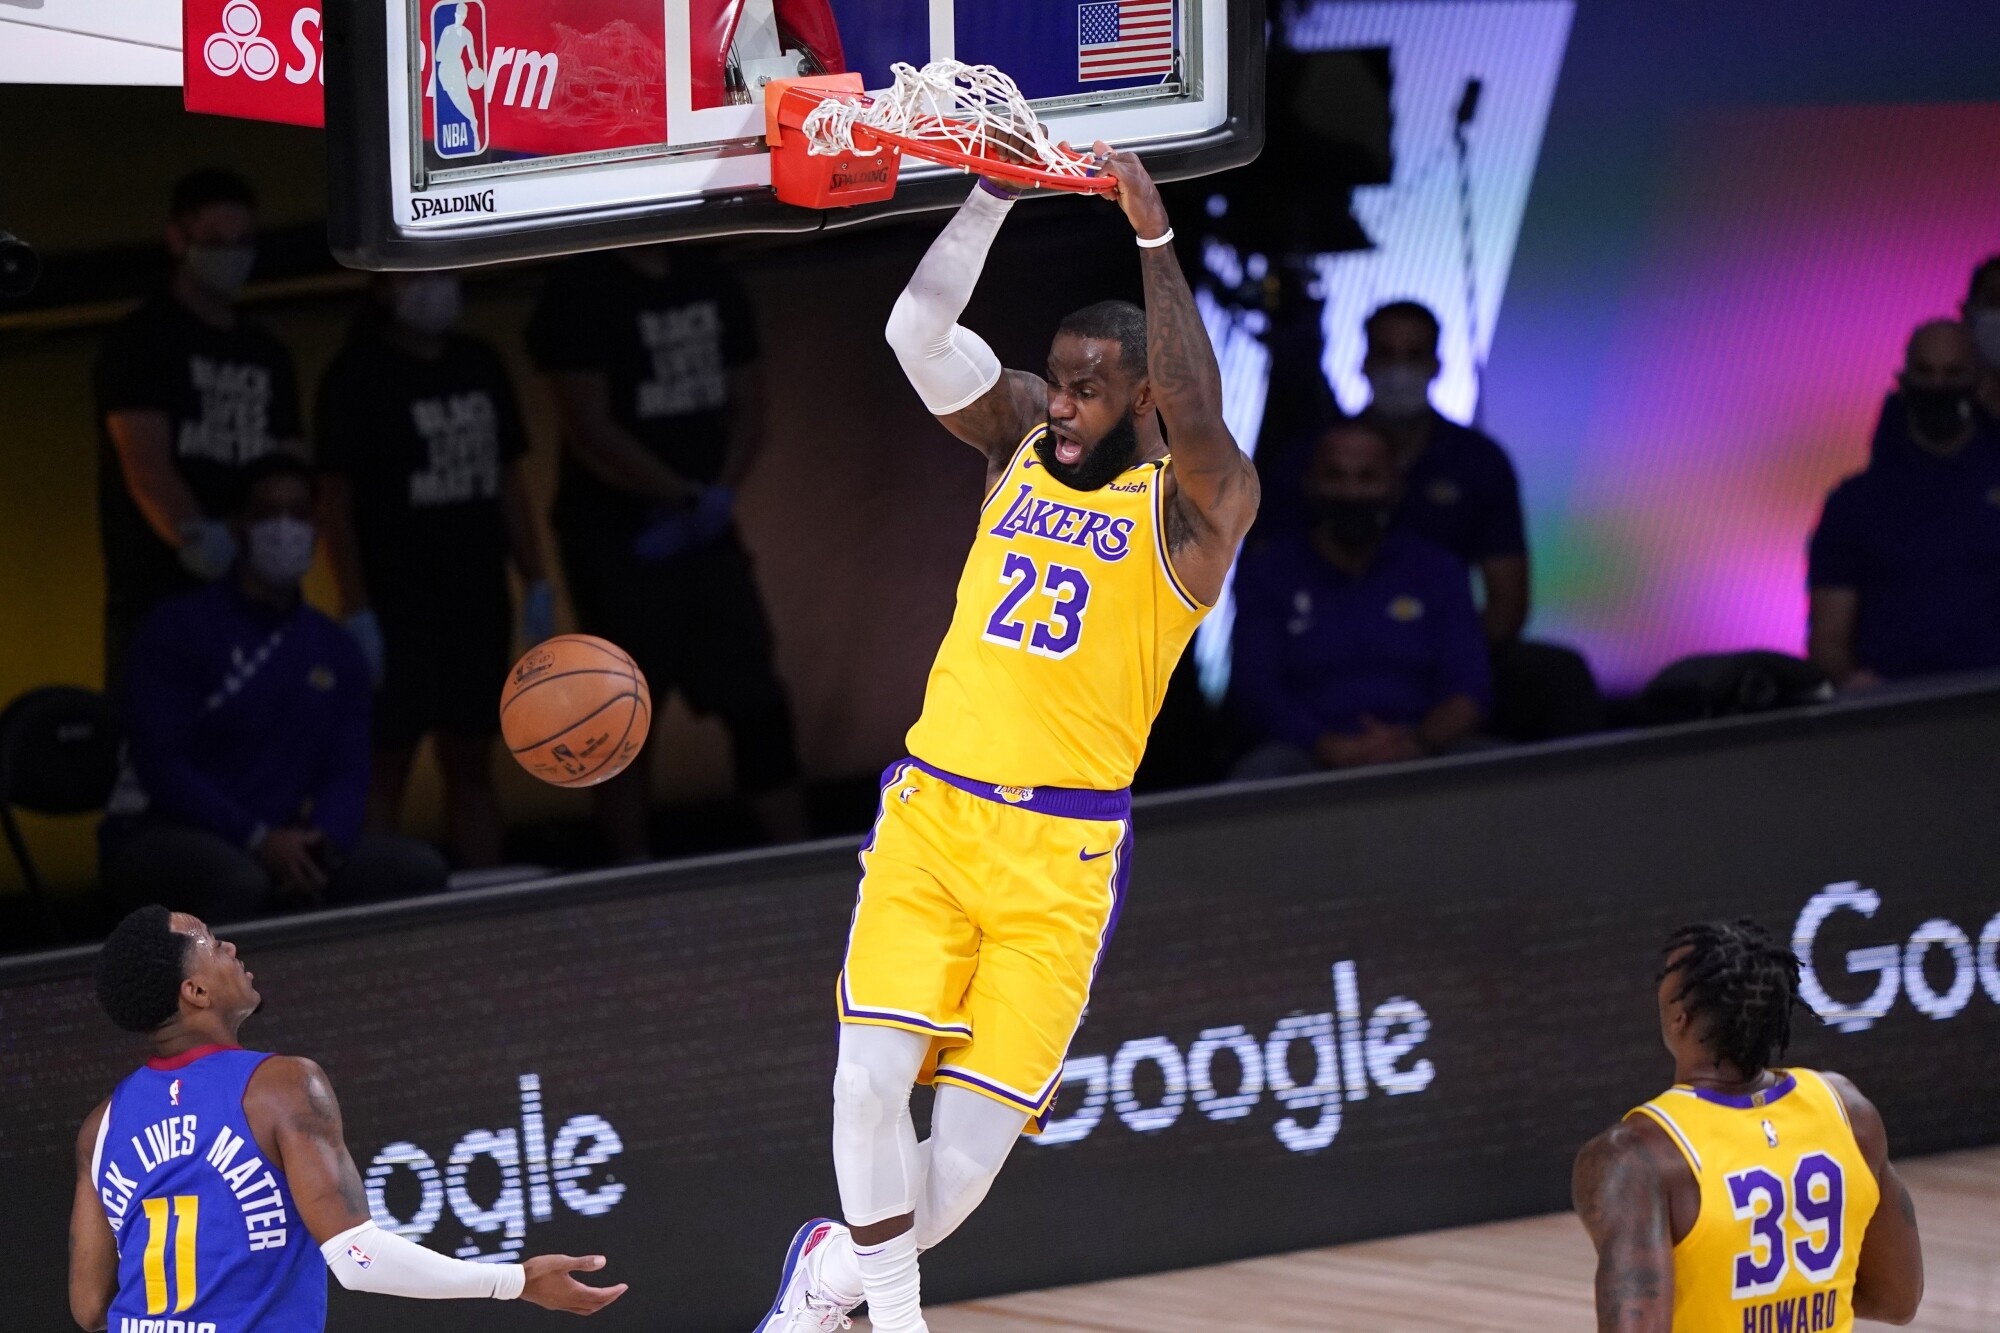 Lakers star LeBron James dunks during the first half against the Denver Nuggets.